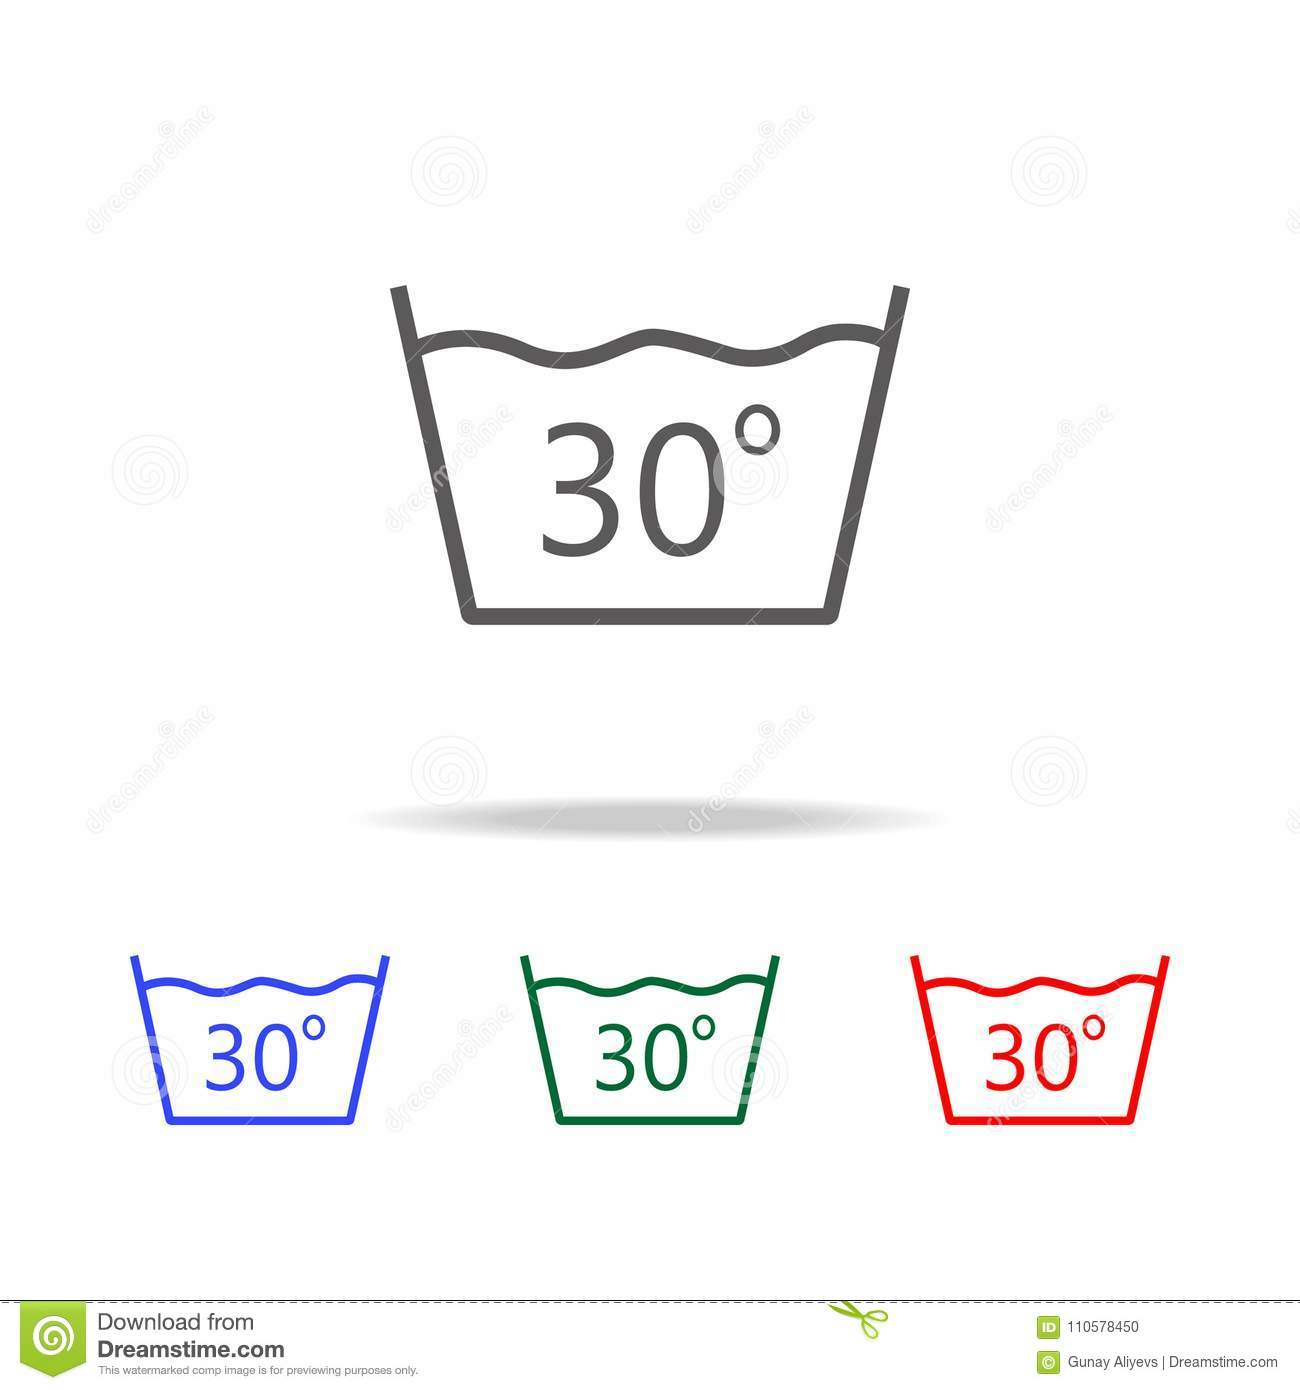 Delicate Gentle 30 Degrees Washing Laundry Symbol Line